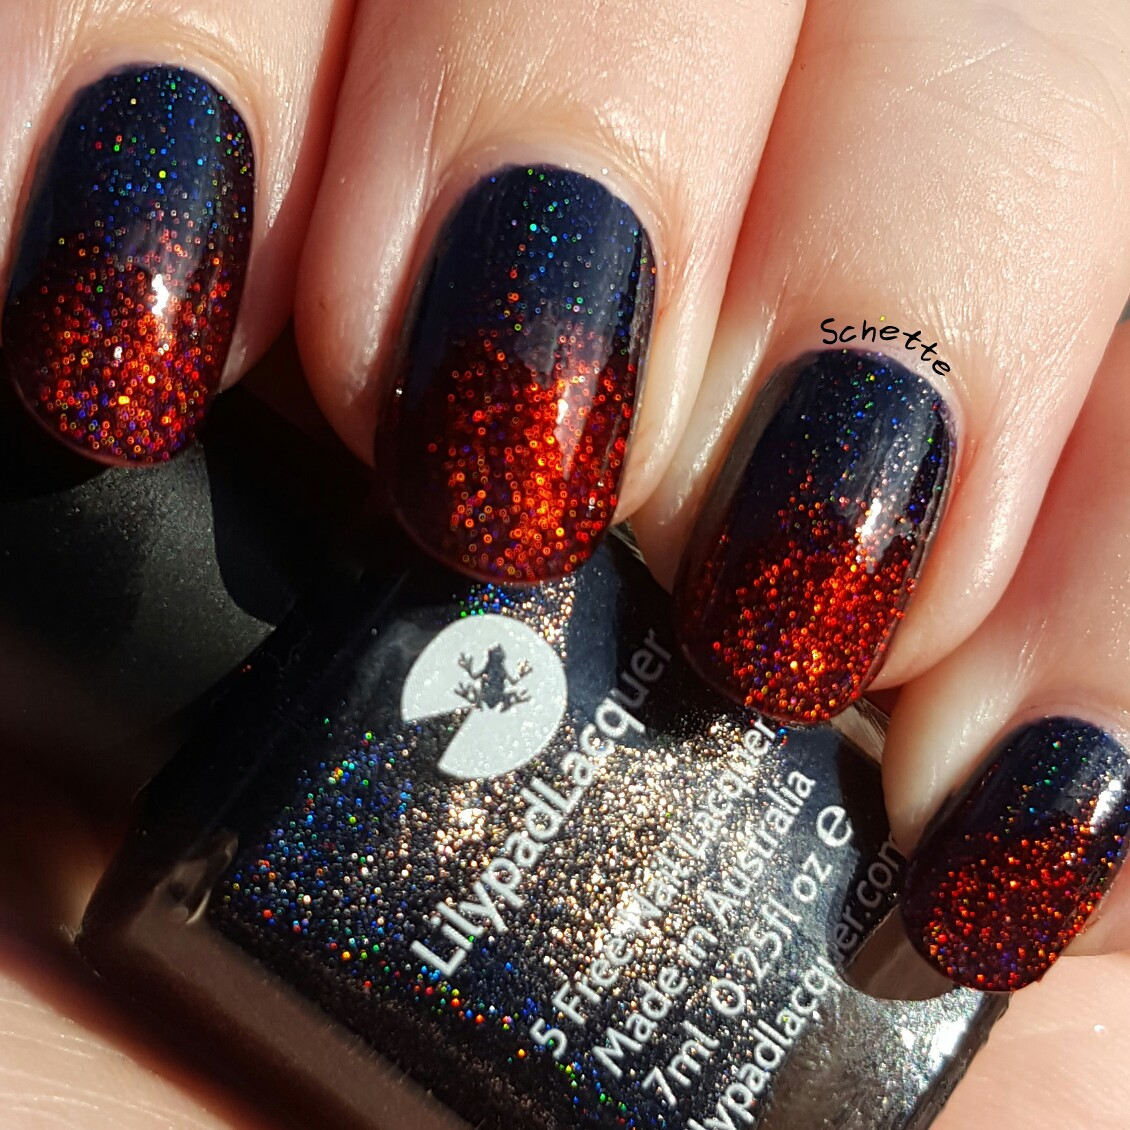 Lilypad Lacquer: Gradient Nero with When Love comes to town